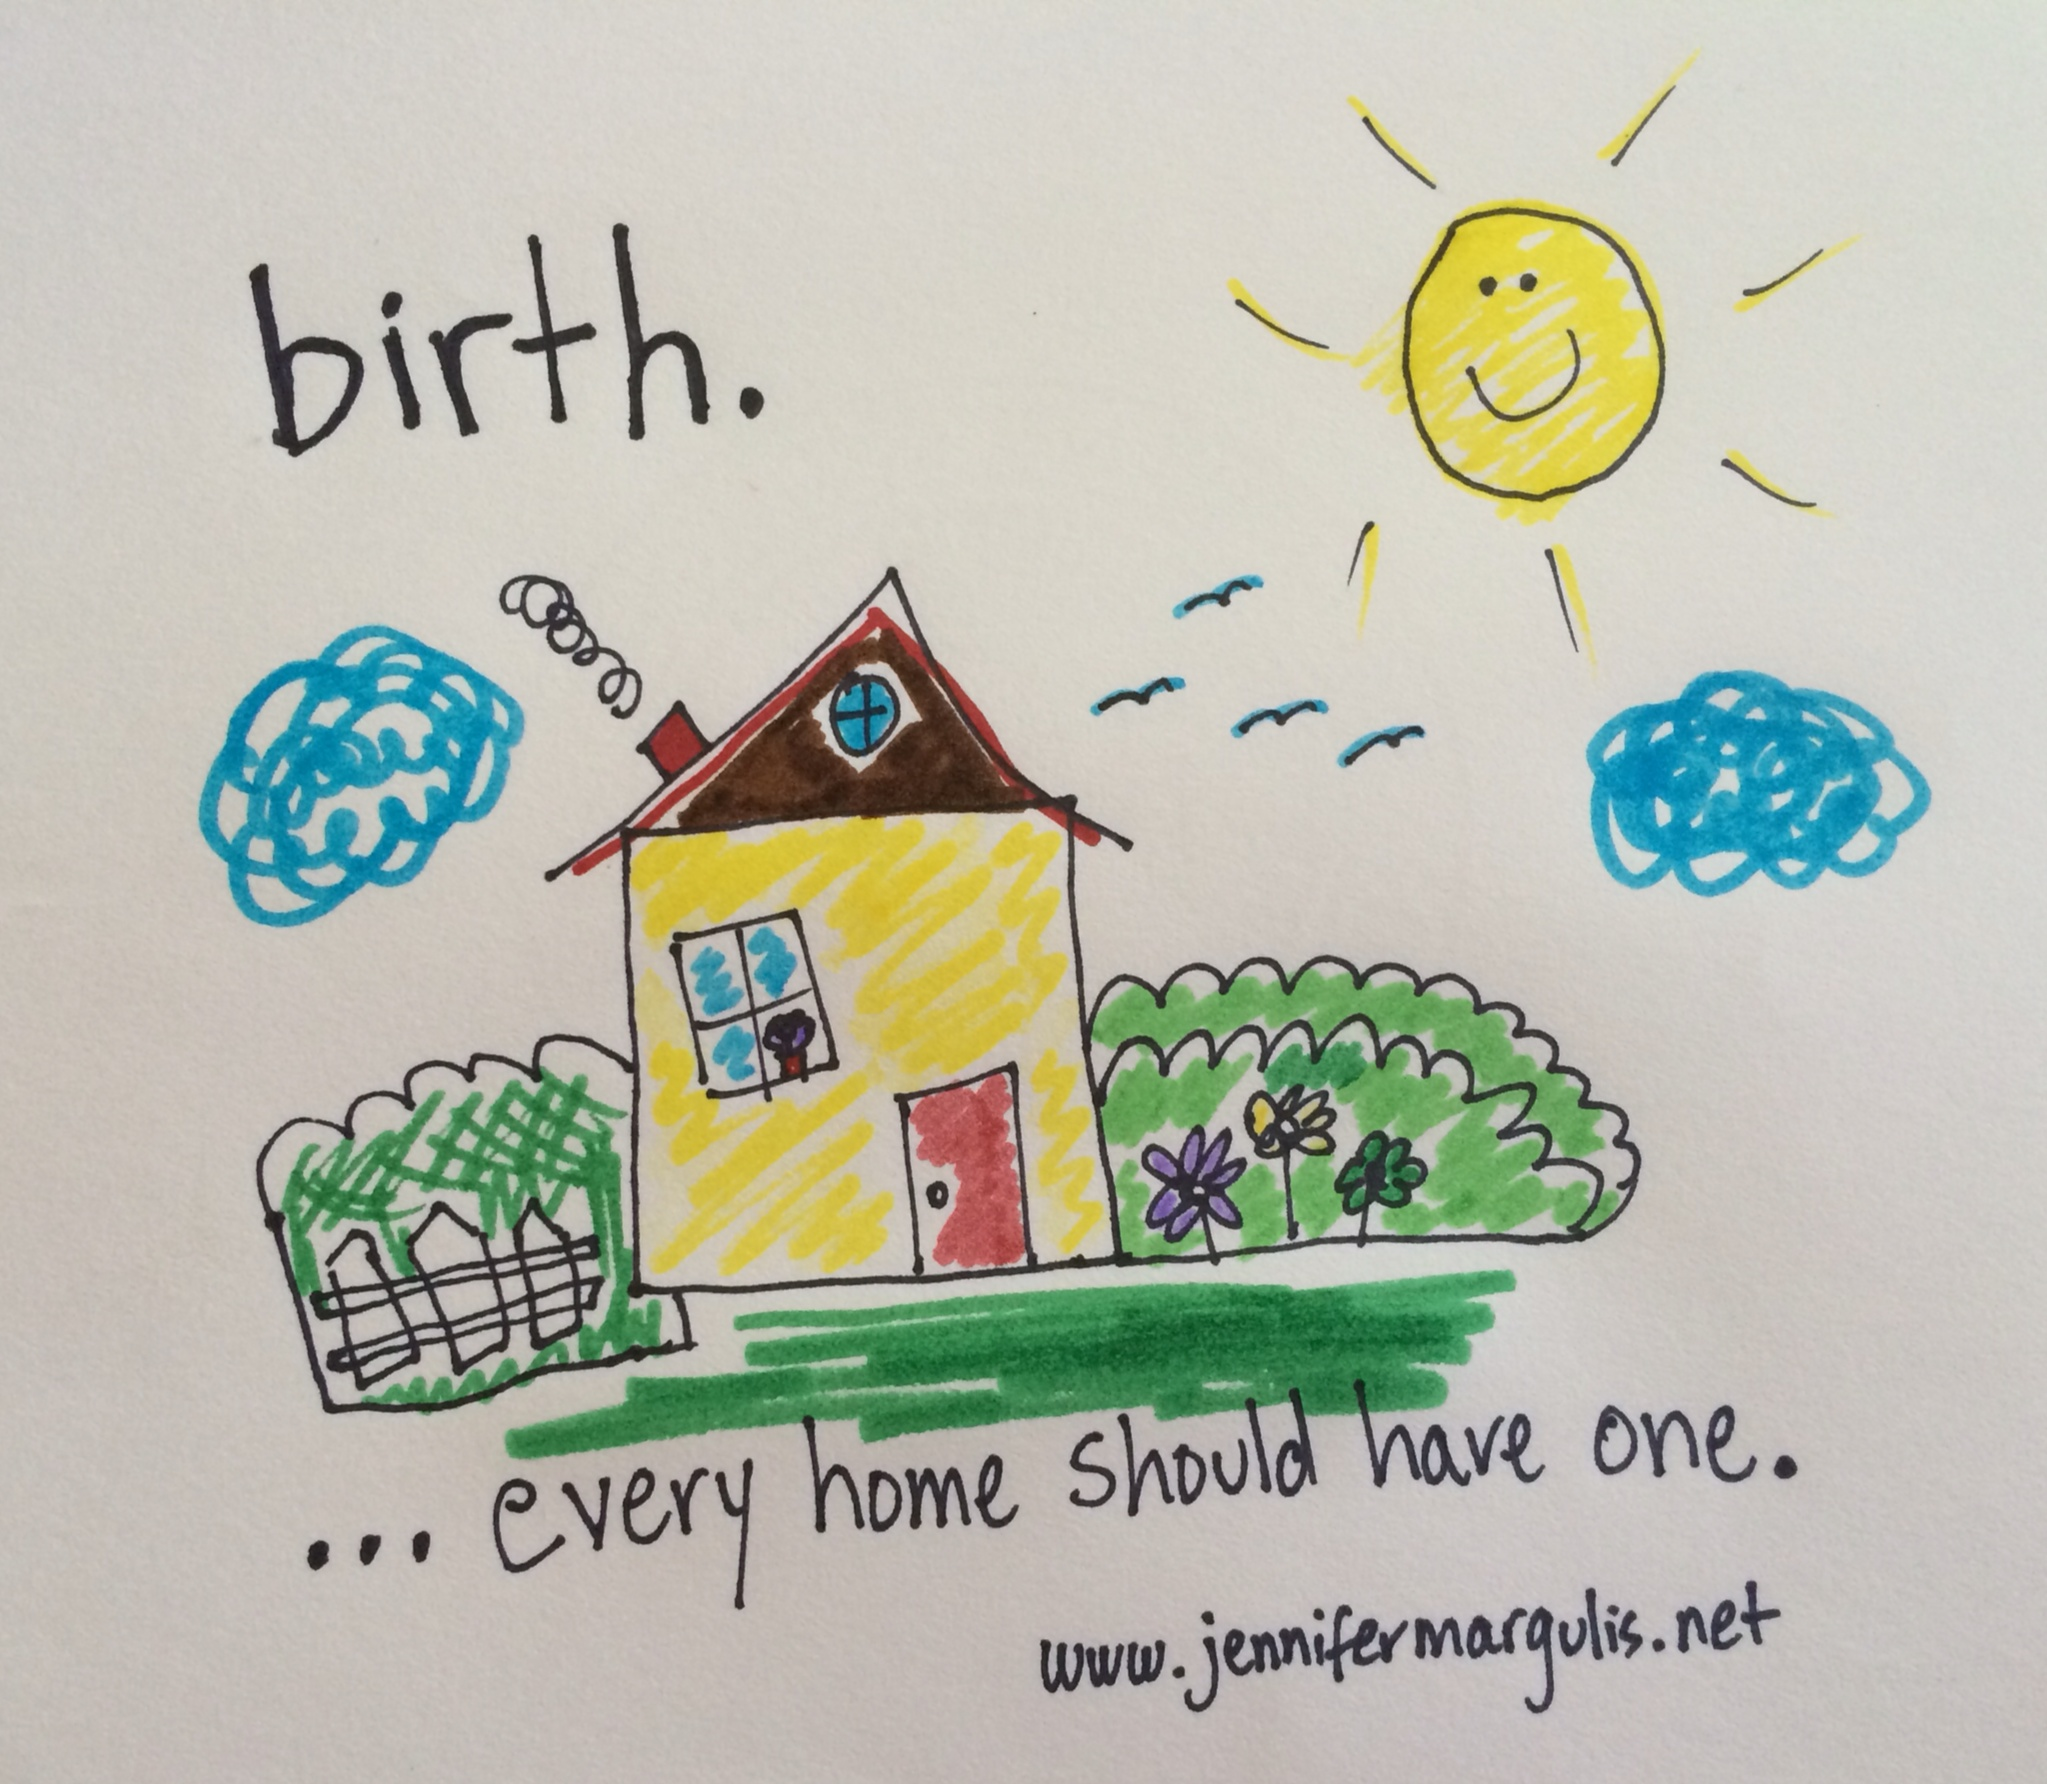 45 reasons NOT to have a home birth (spoiler: this post is not what you think)